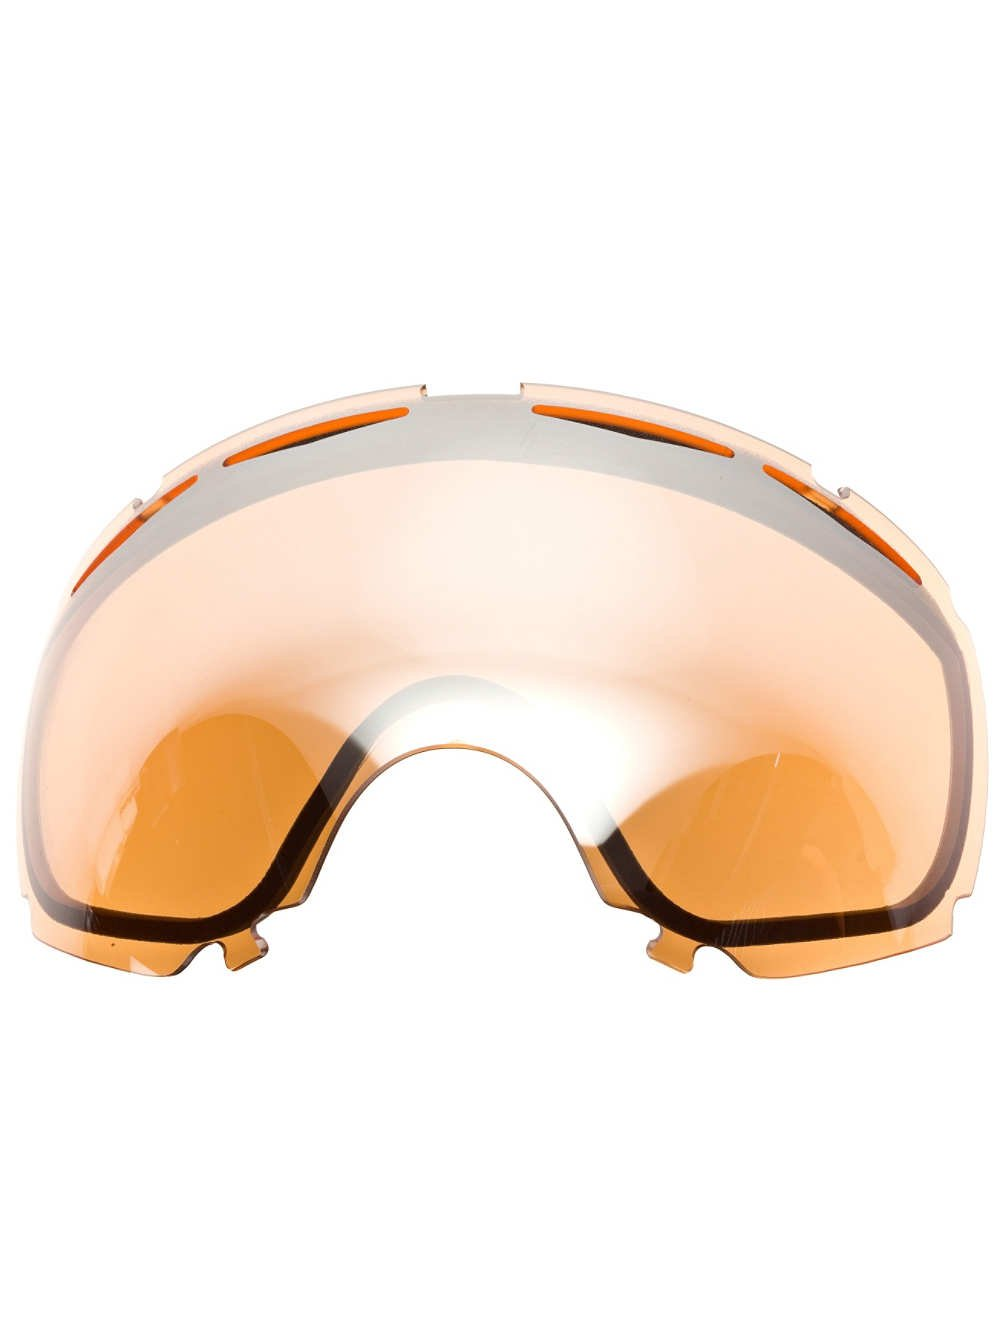 oakley clear lens safety glasses  oakley canopy replacement